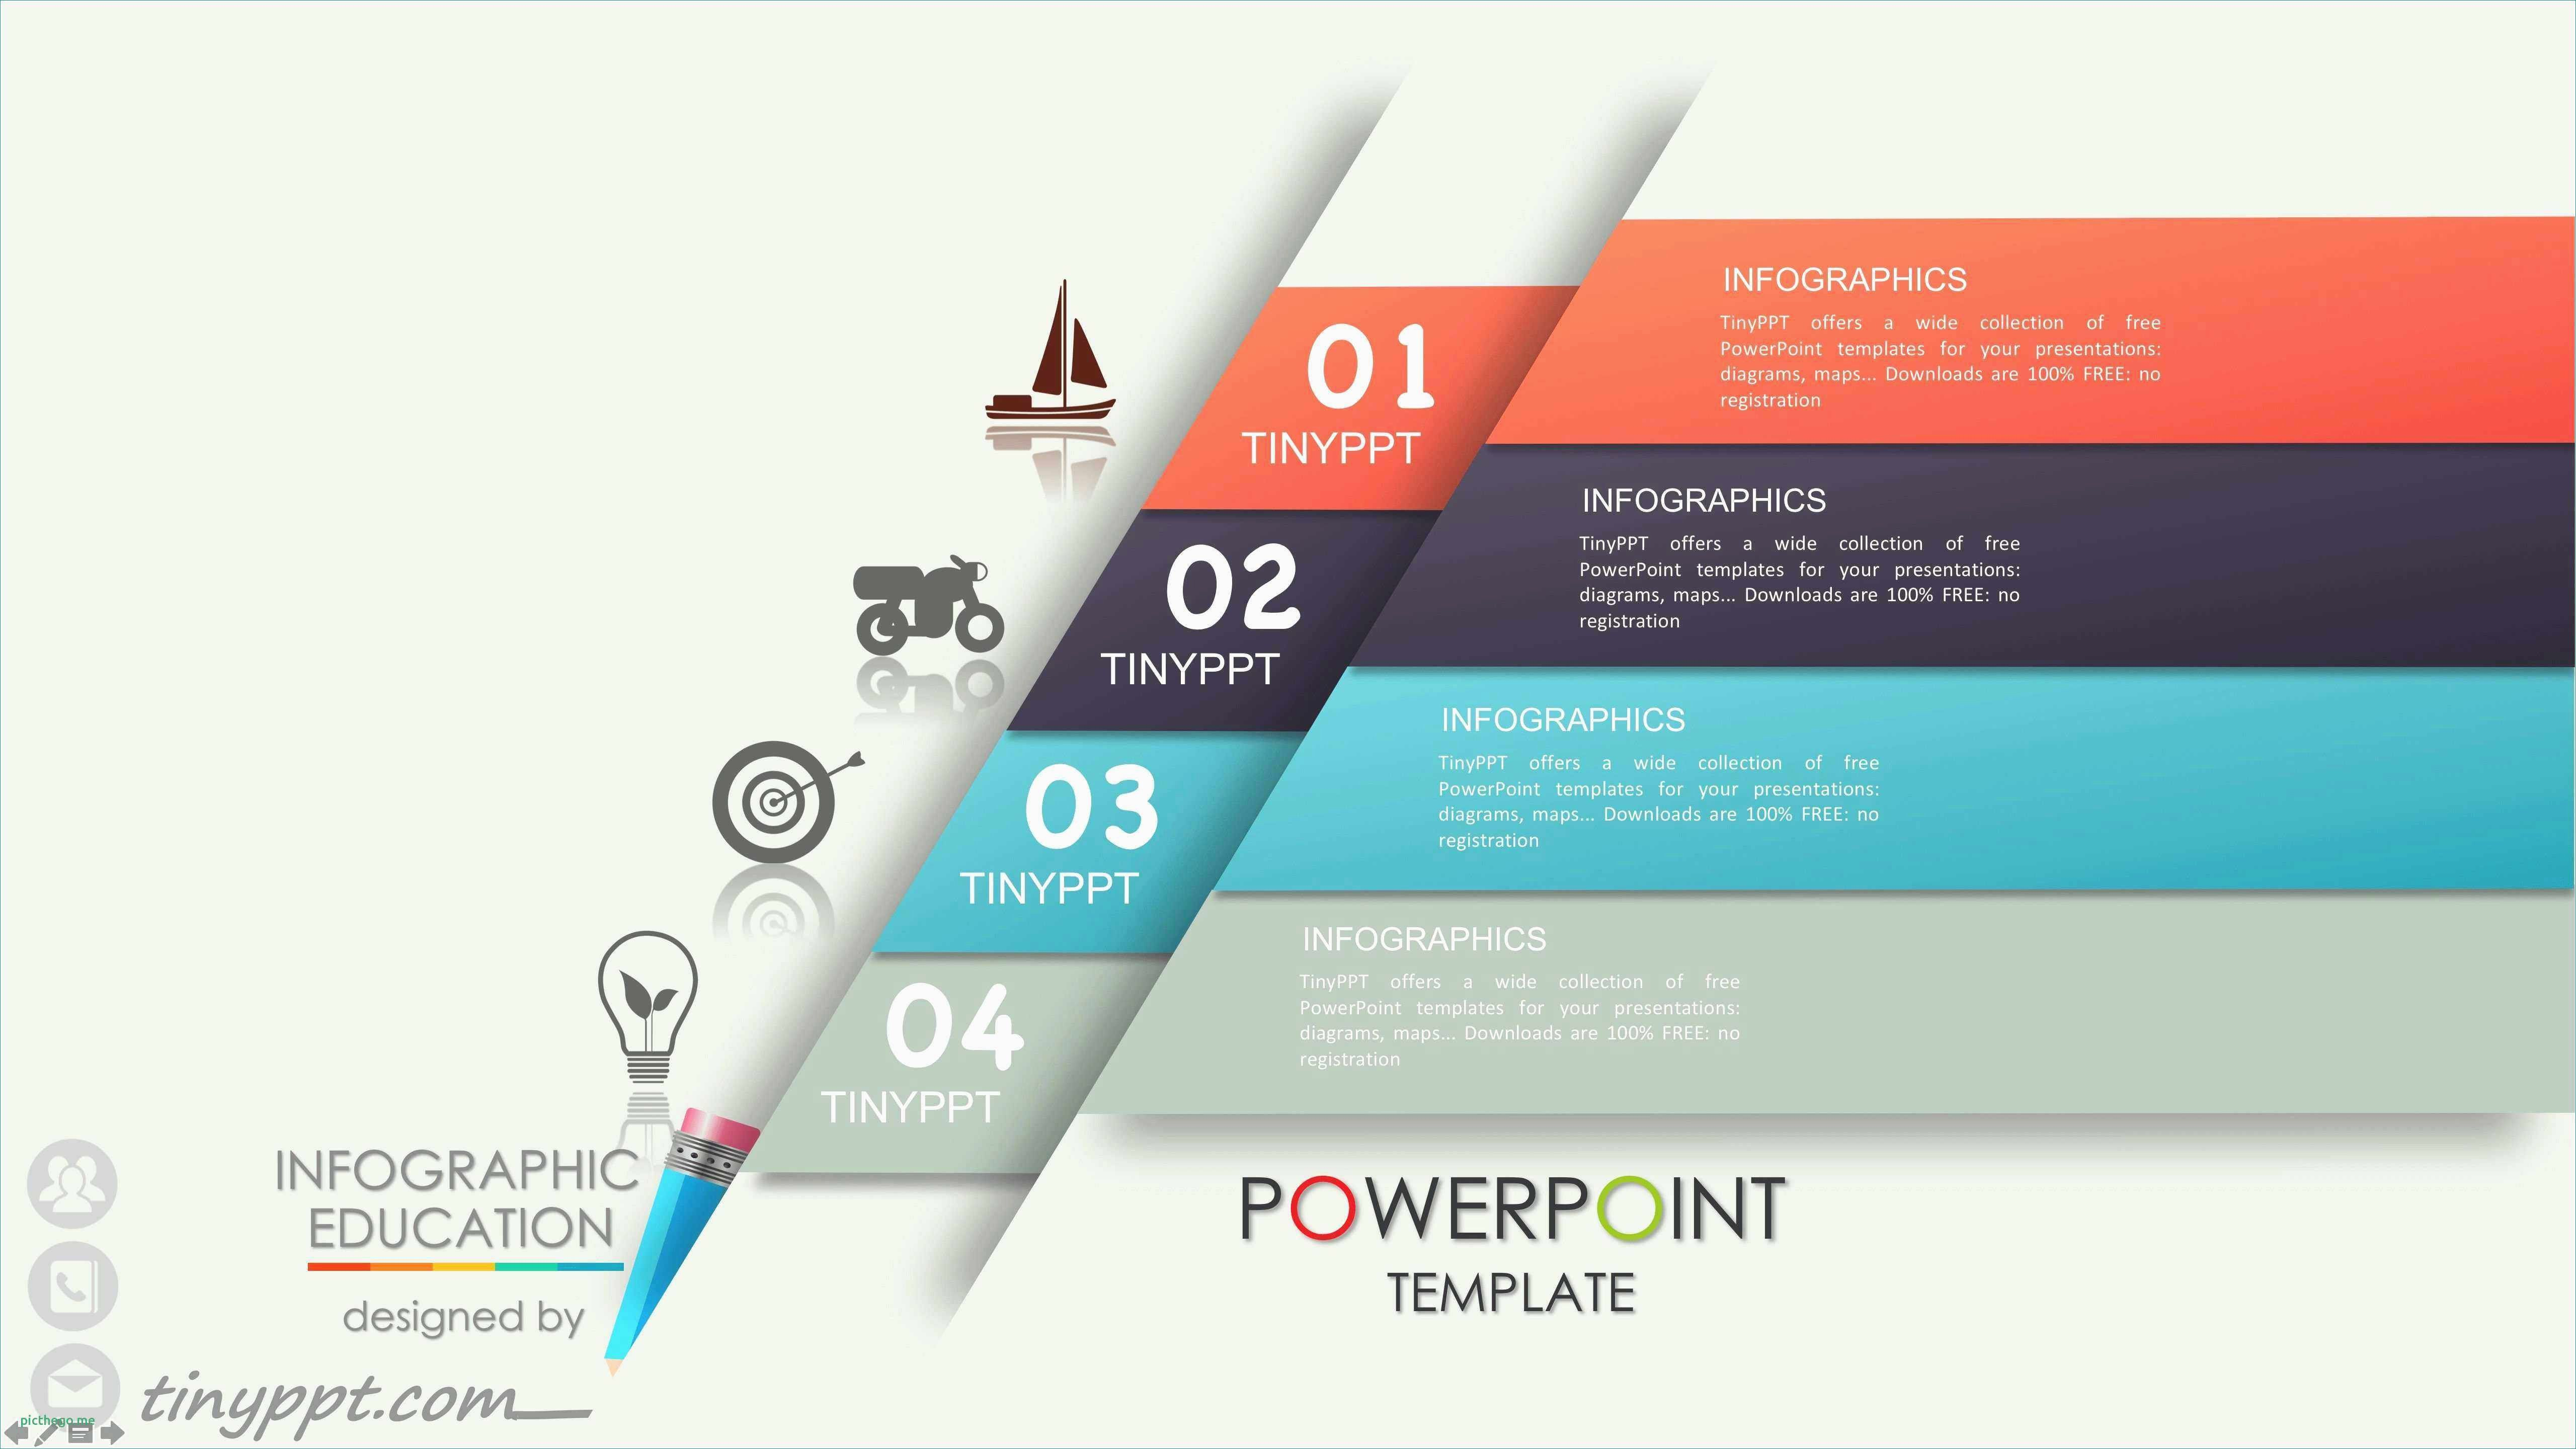 Powerpoint Background Disney Producing An Aesthetically Attractive Powerpoint Back Infographic Powerpoint Powerpoint Template Free School Powerpoint Templates